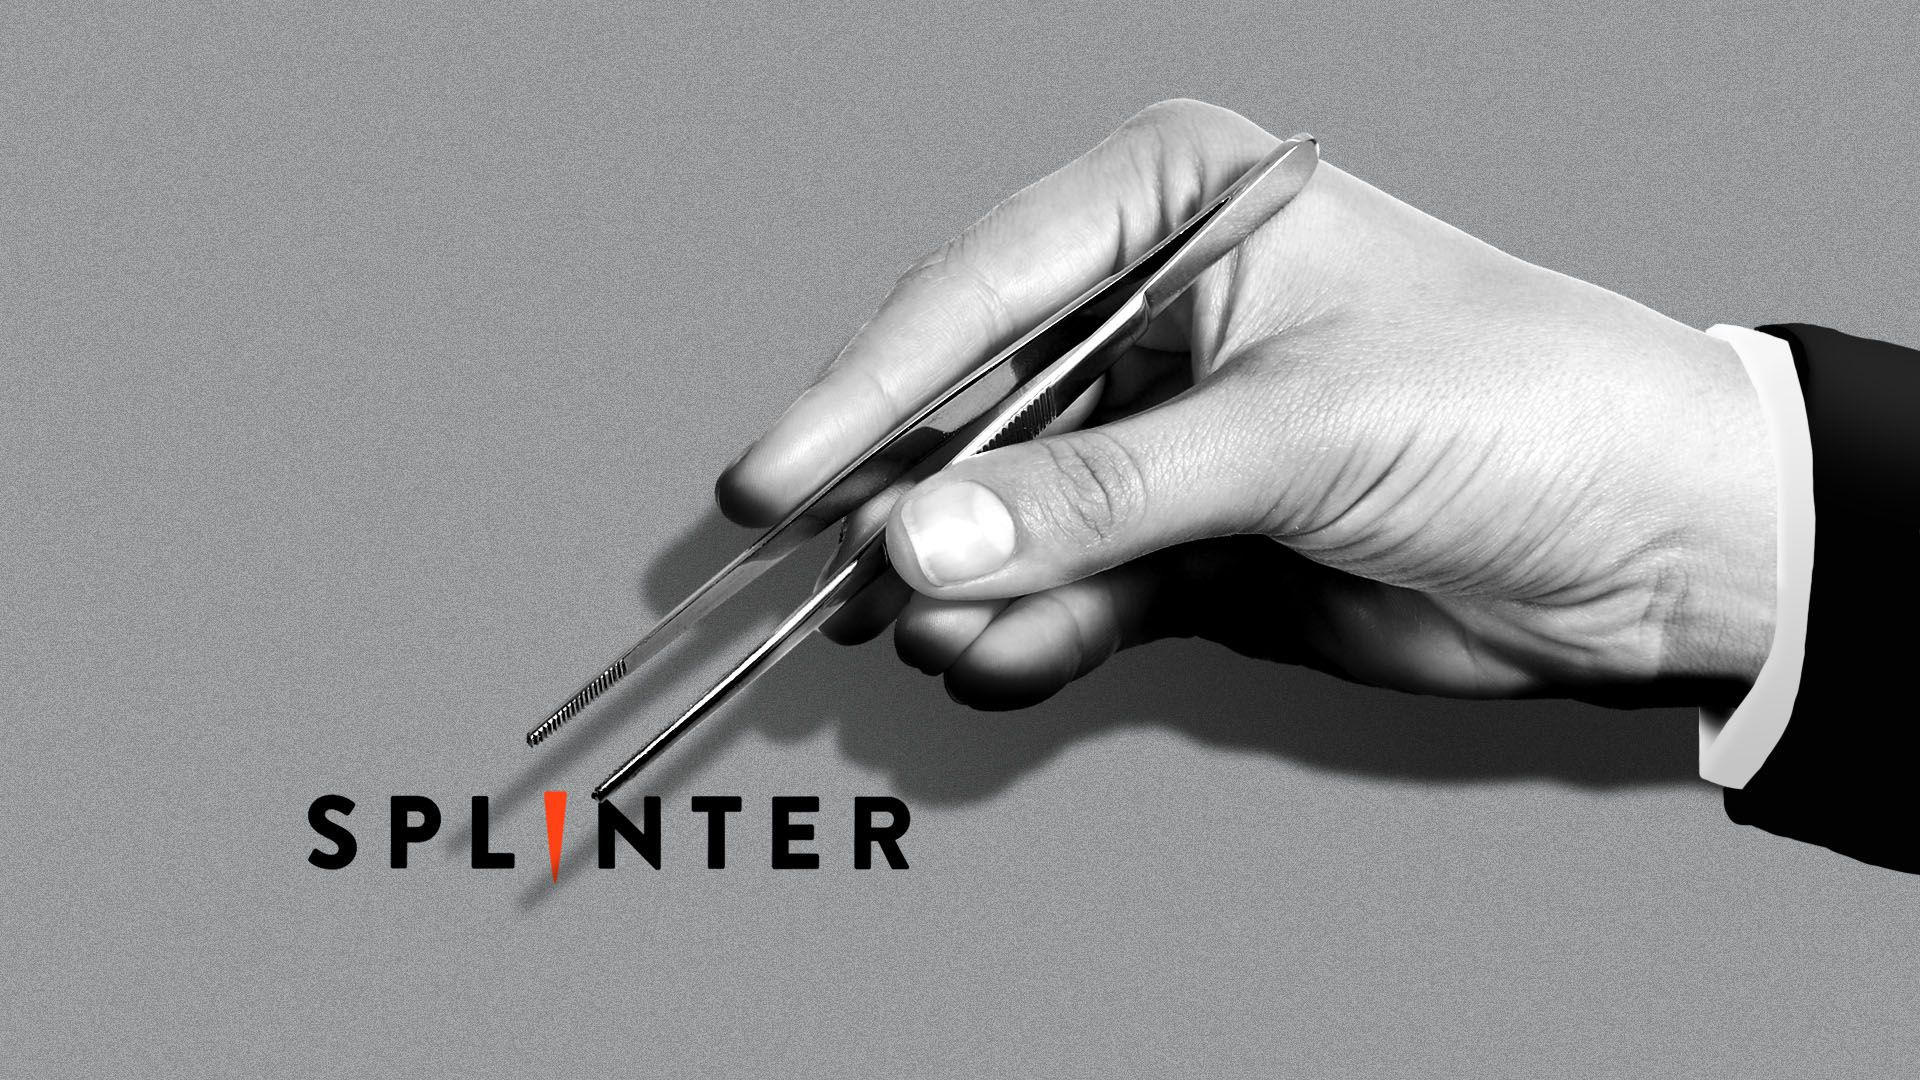 Illustration of a hand with a giant pair of tweezers hanging ominously over the Splinter logo.